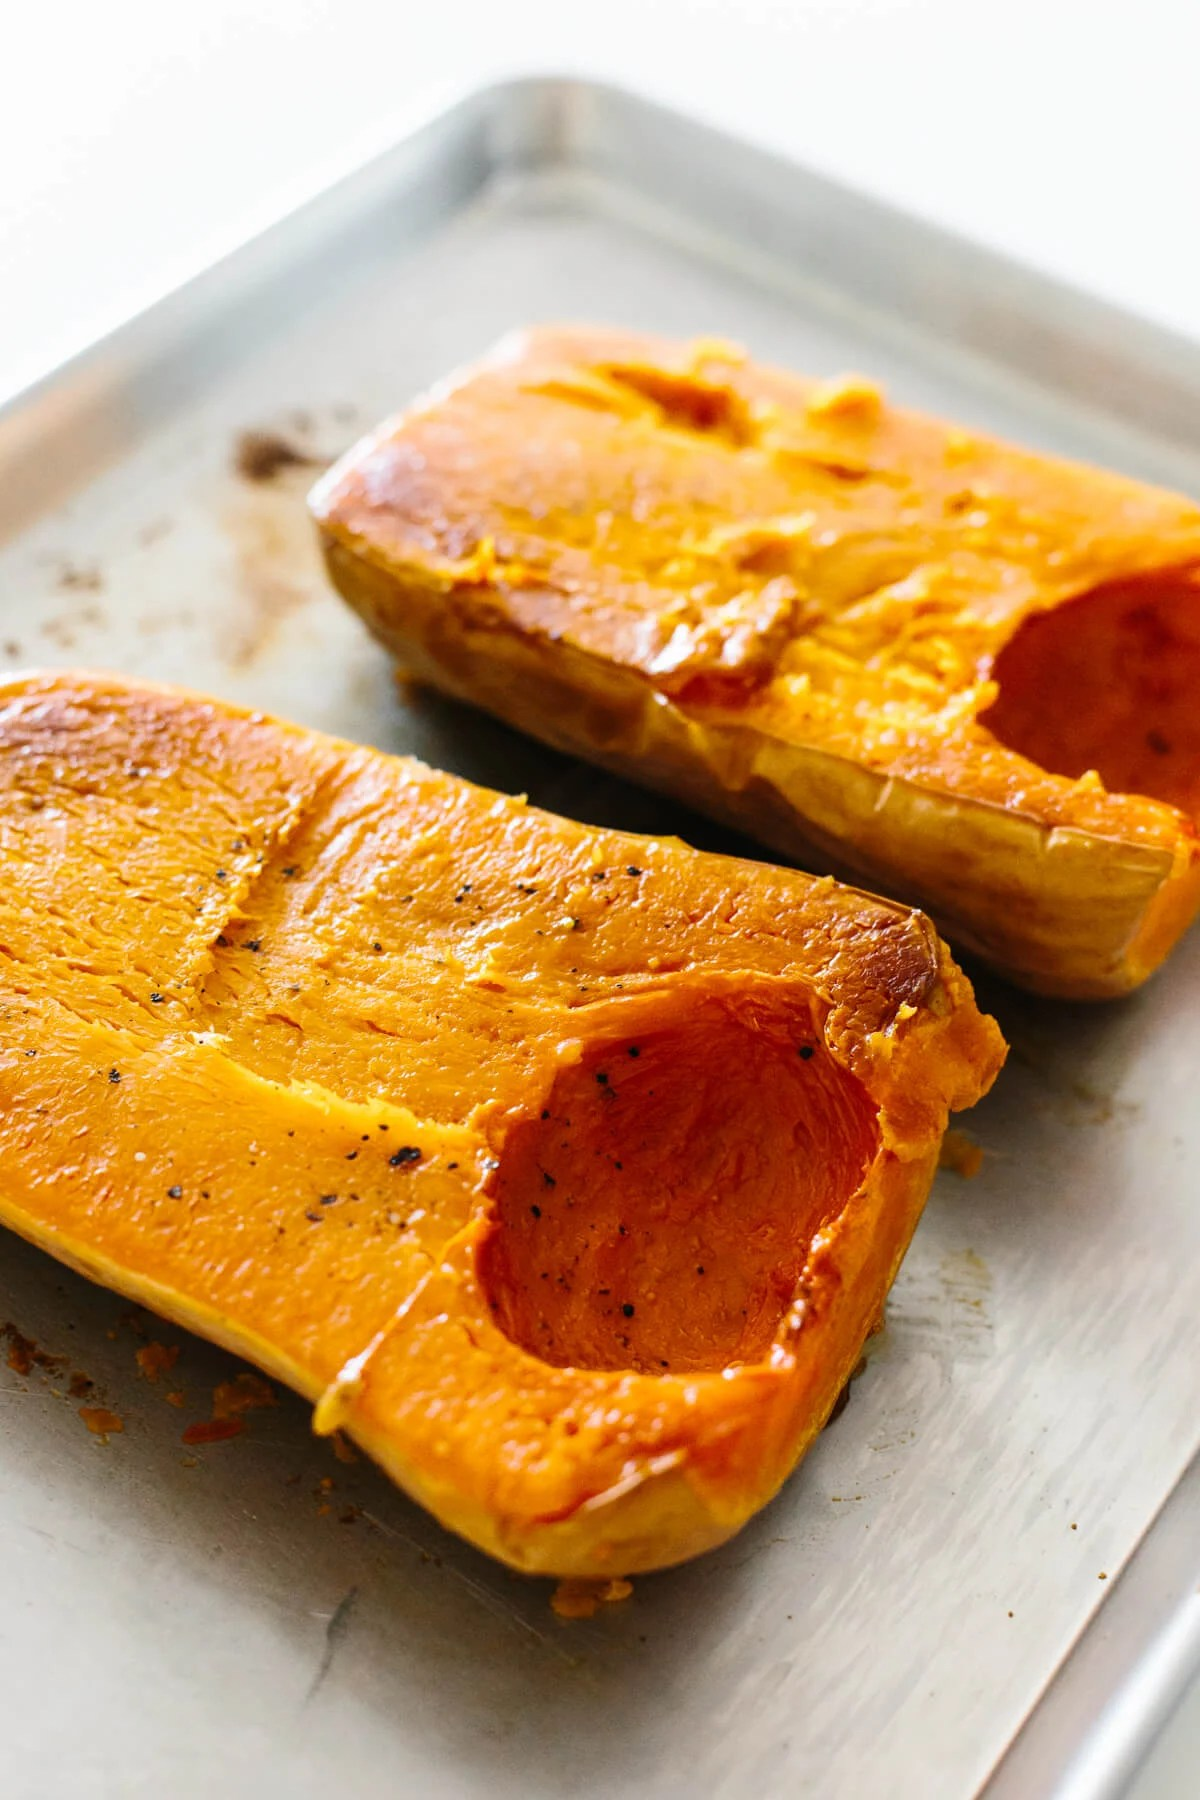 Roasted butternut squash halves on a baking sheet.